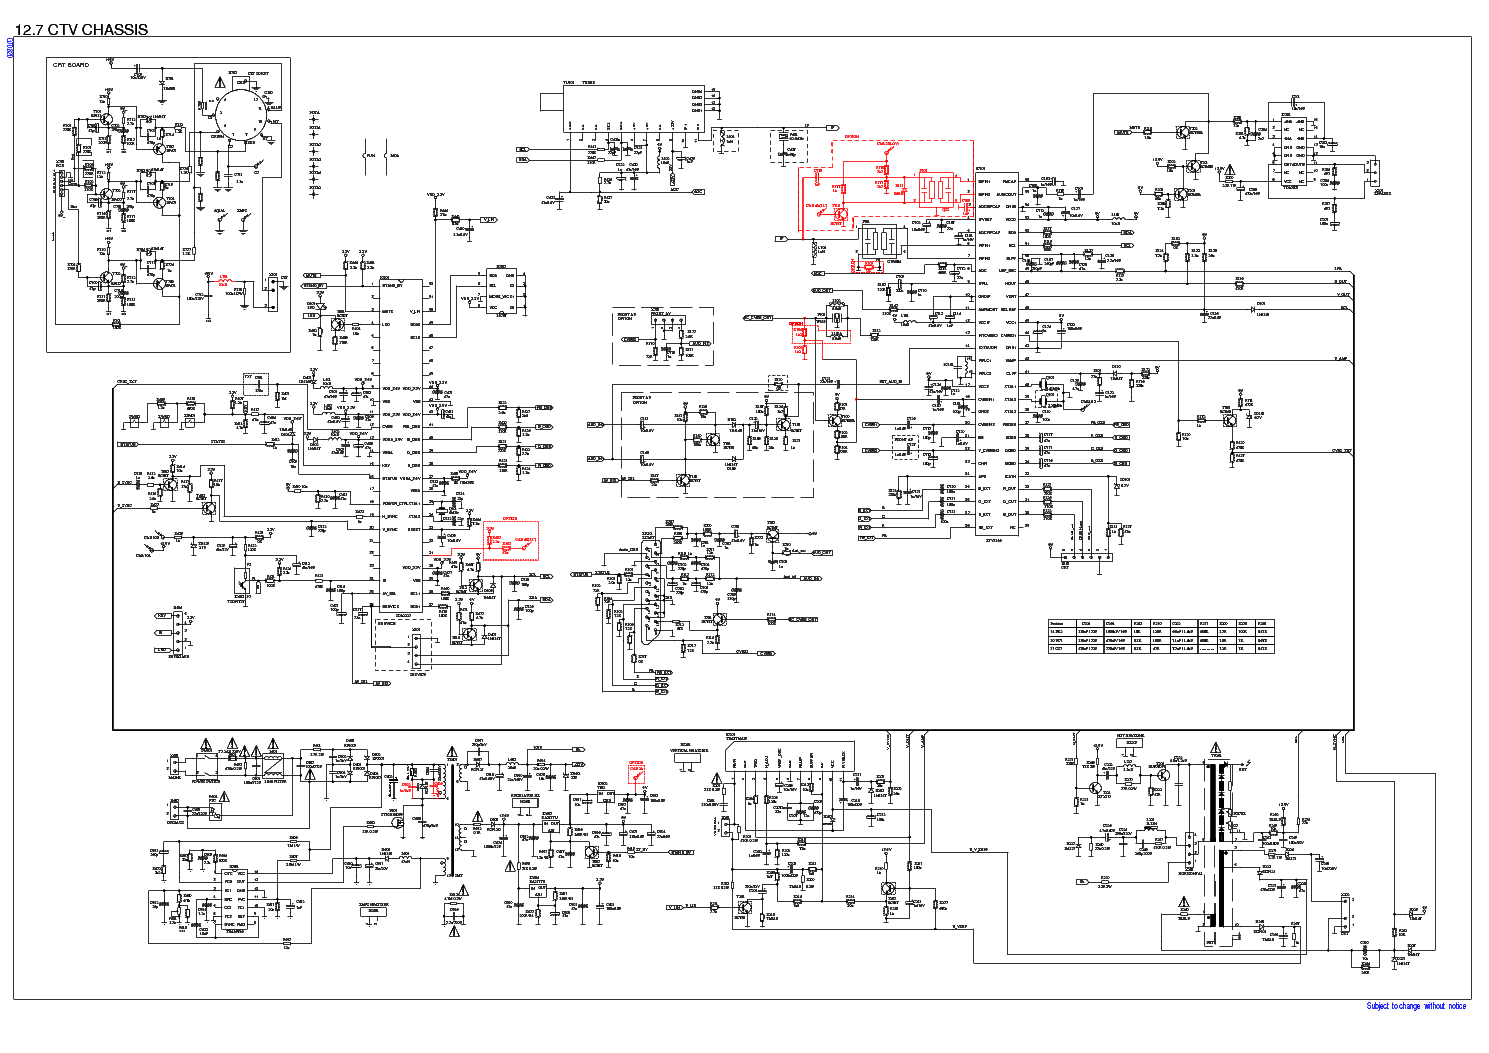 beko tel chassis 12 7 circuit diagram service manual free download rh thecircuitdiagrams blogspot com free electronic circuit diagrams download Free Electronic Projects